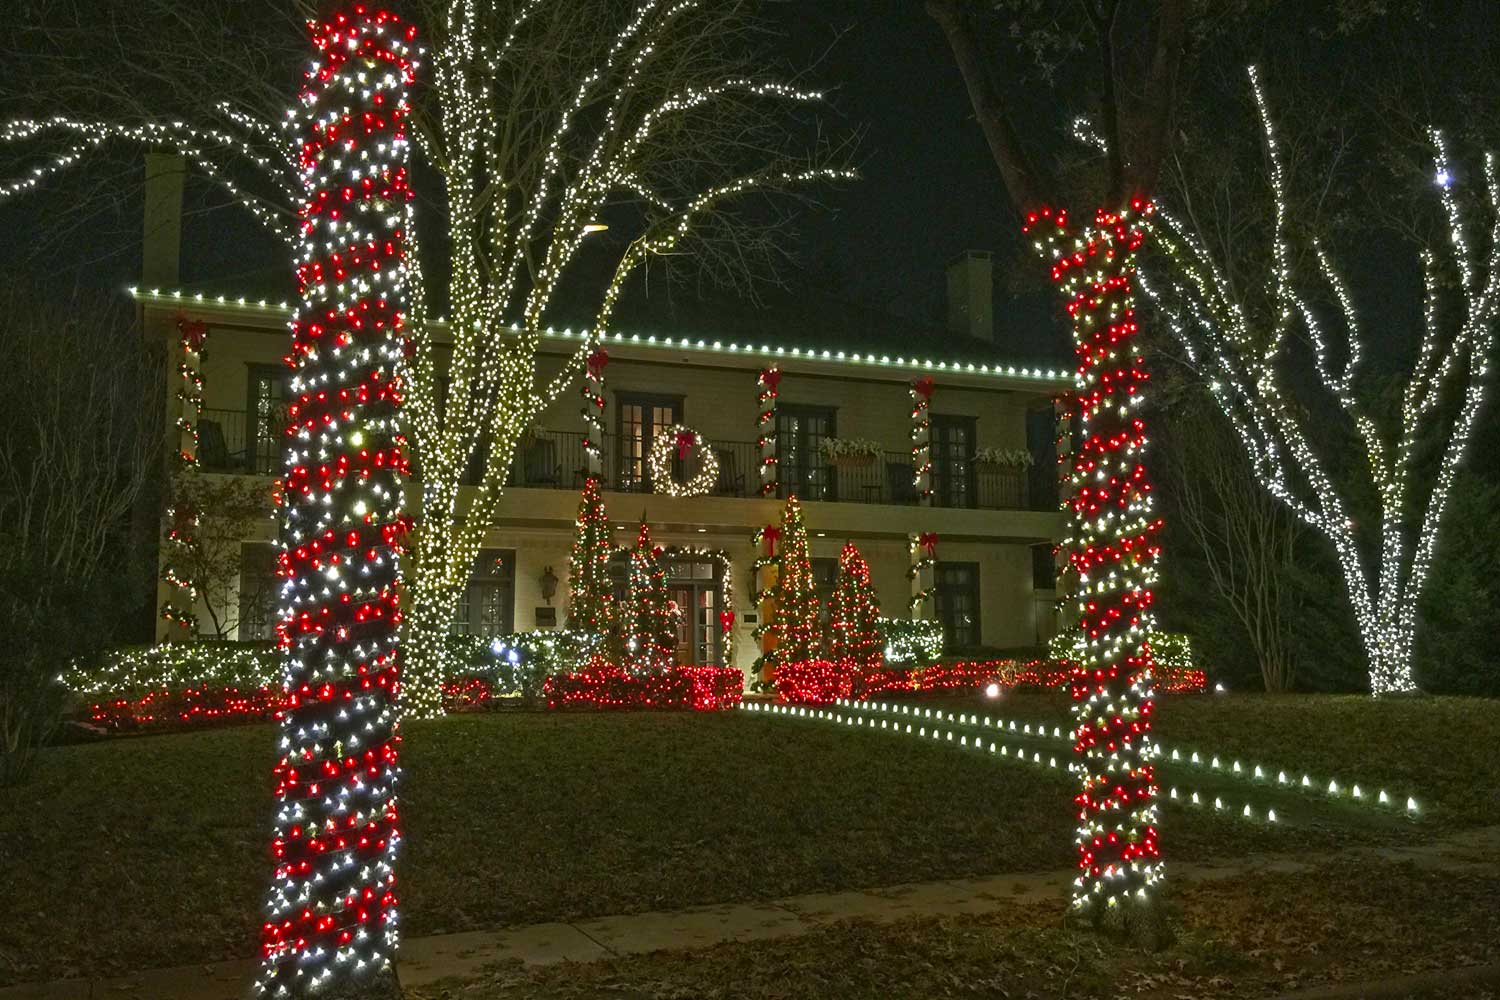 One of several wonderfully lighted homes on Centenary Drive in University Park. Love the candy cane striped trees.